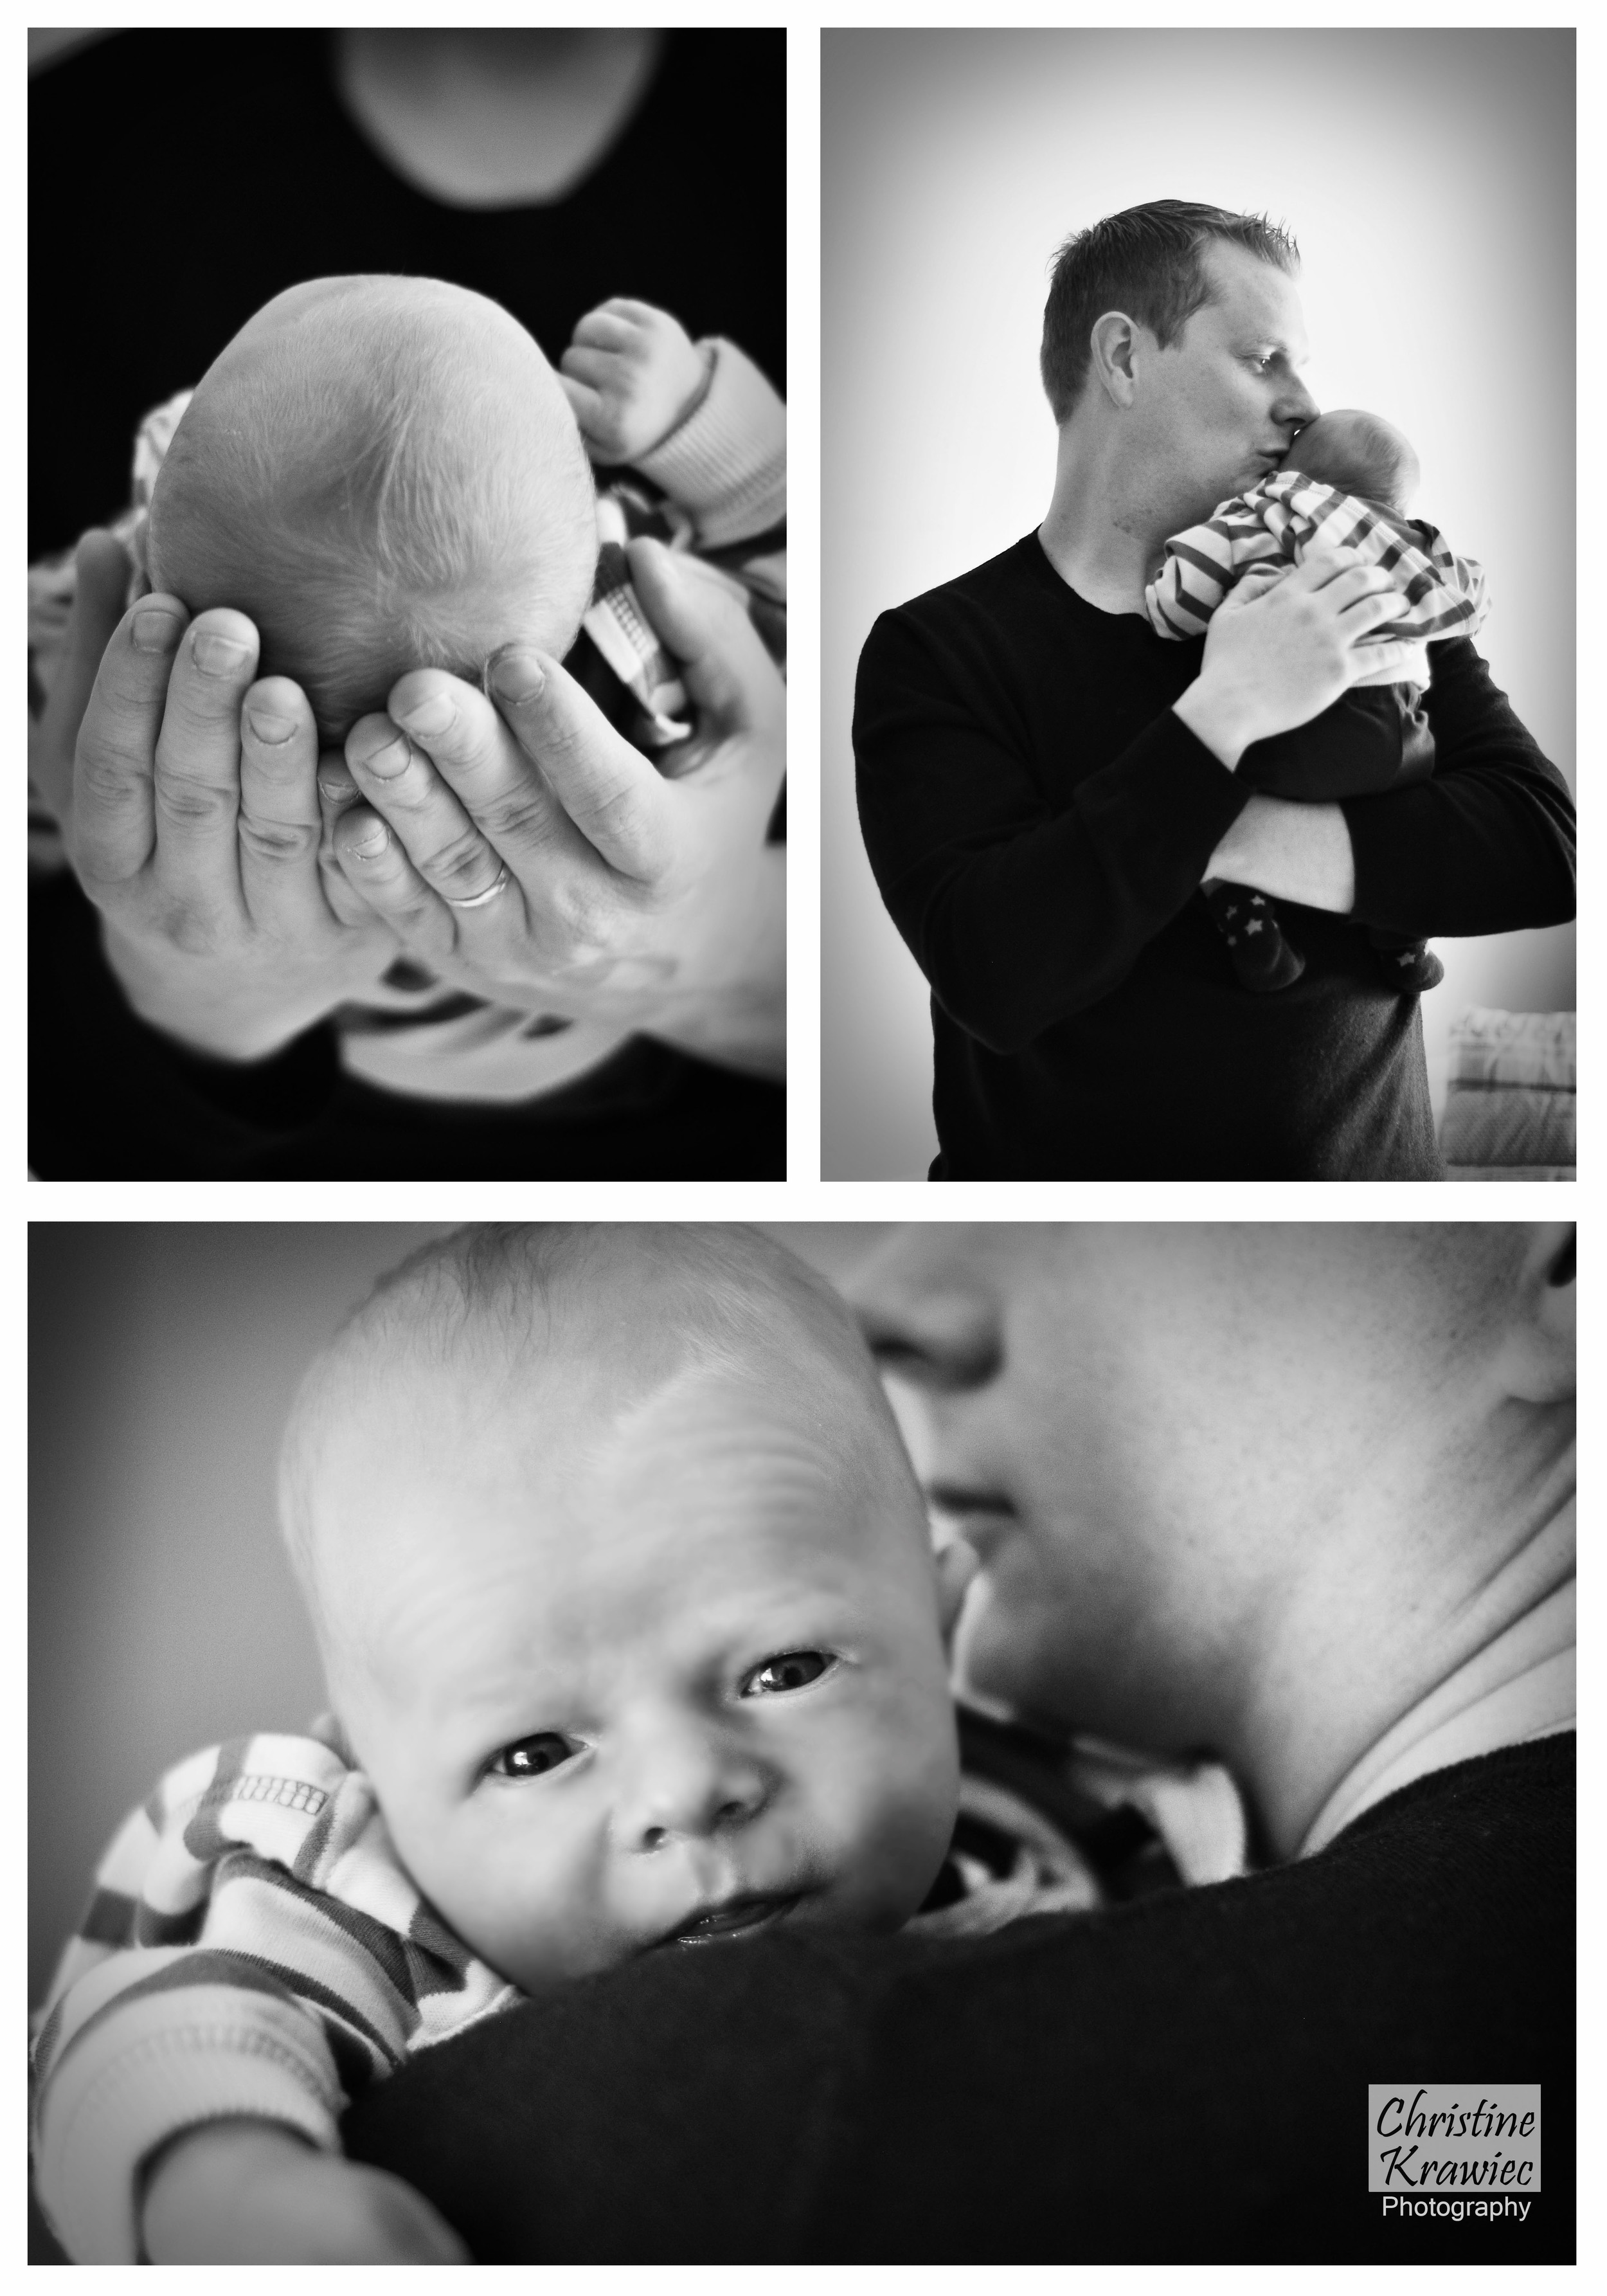 Christine KRawiec PHotography - Broomall Newborn Photographer